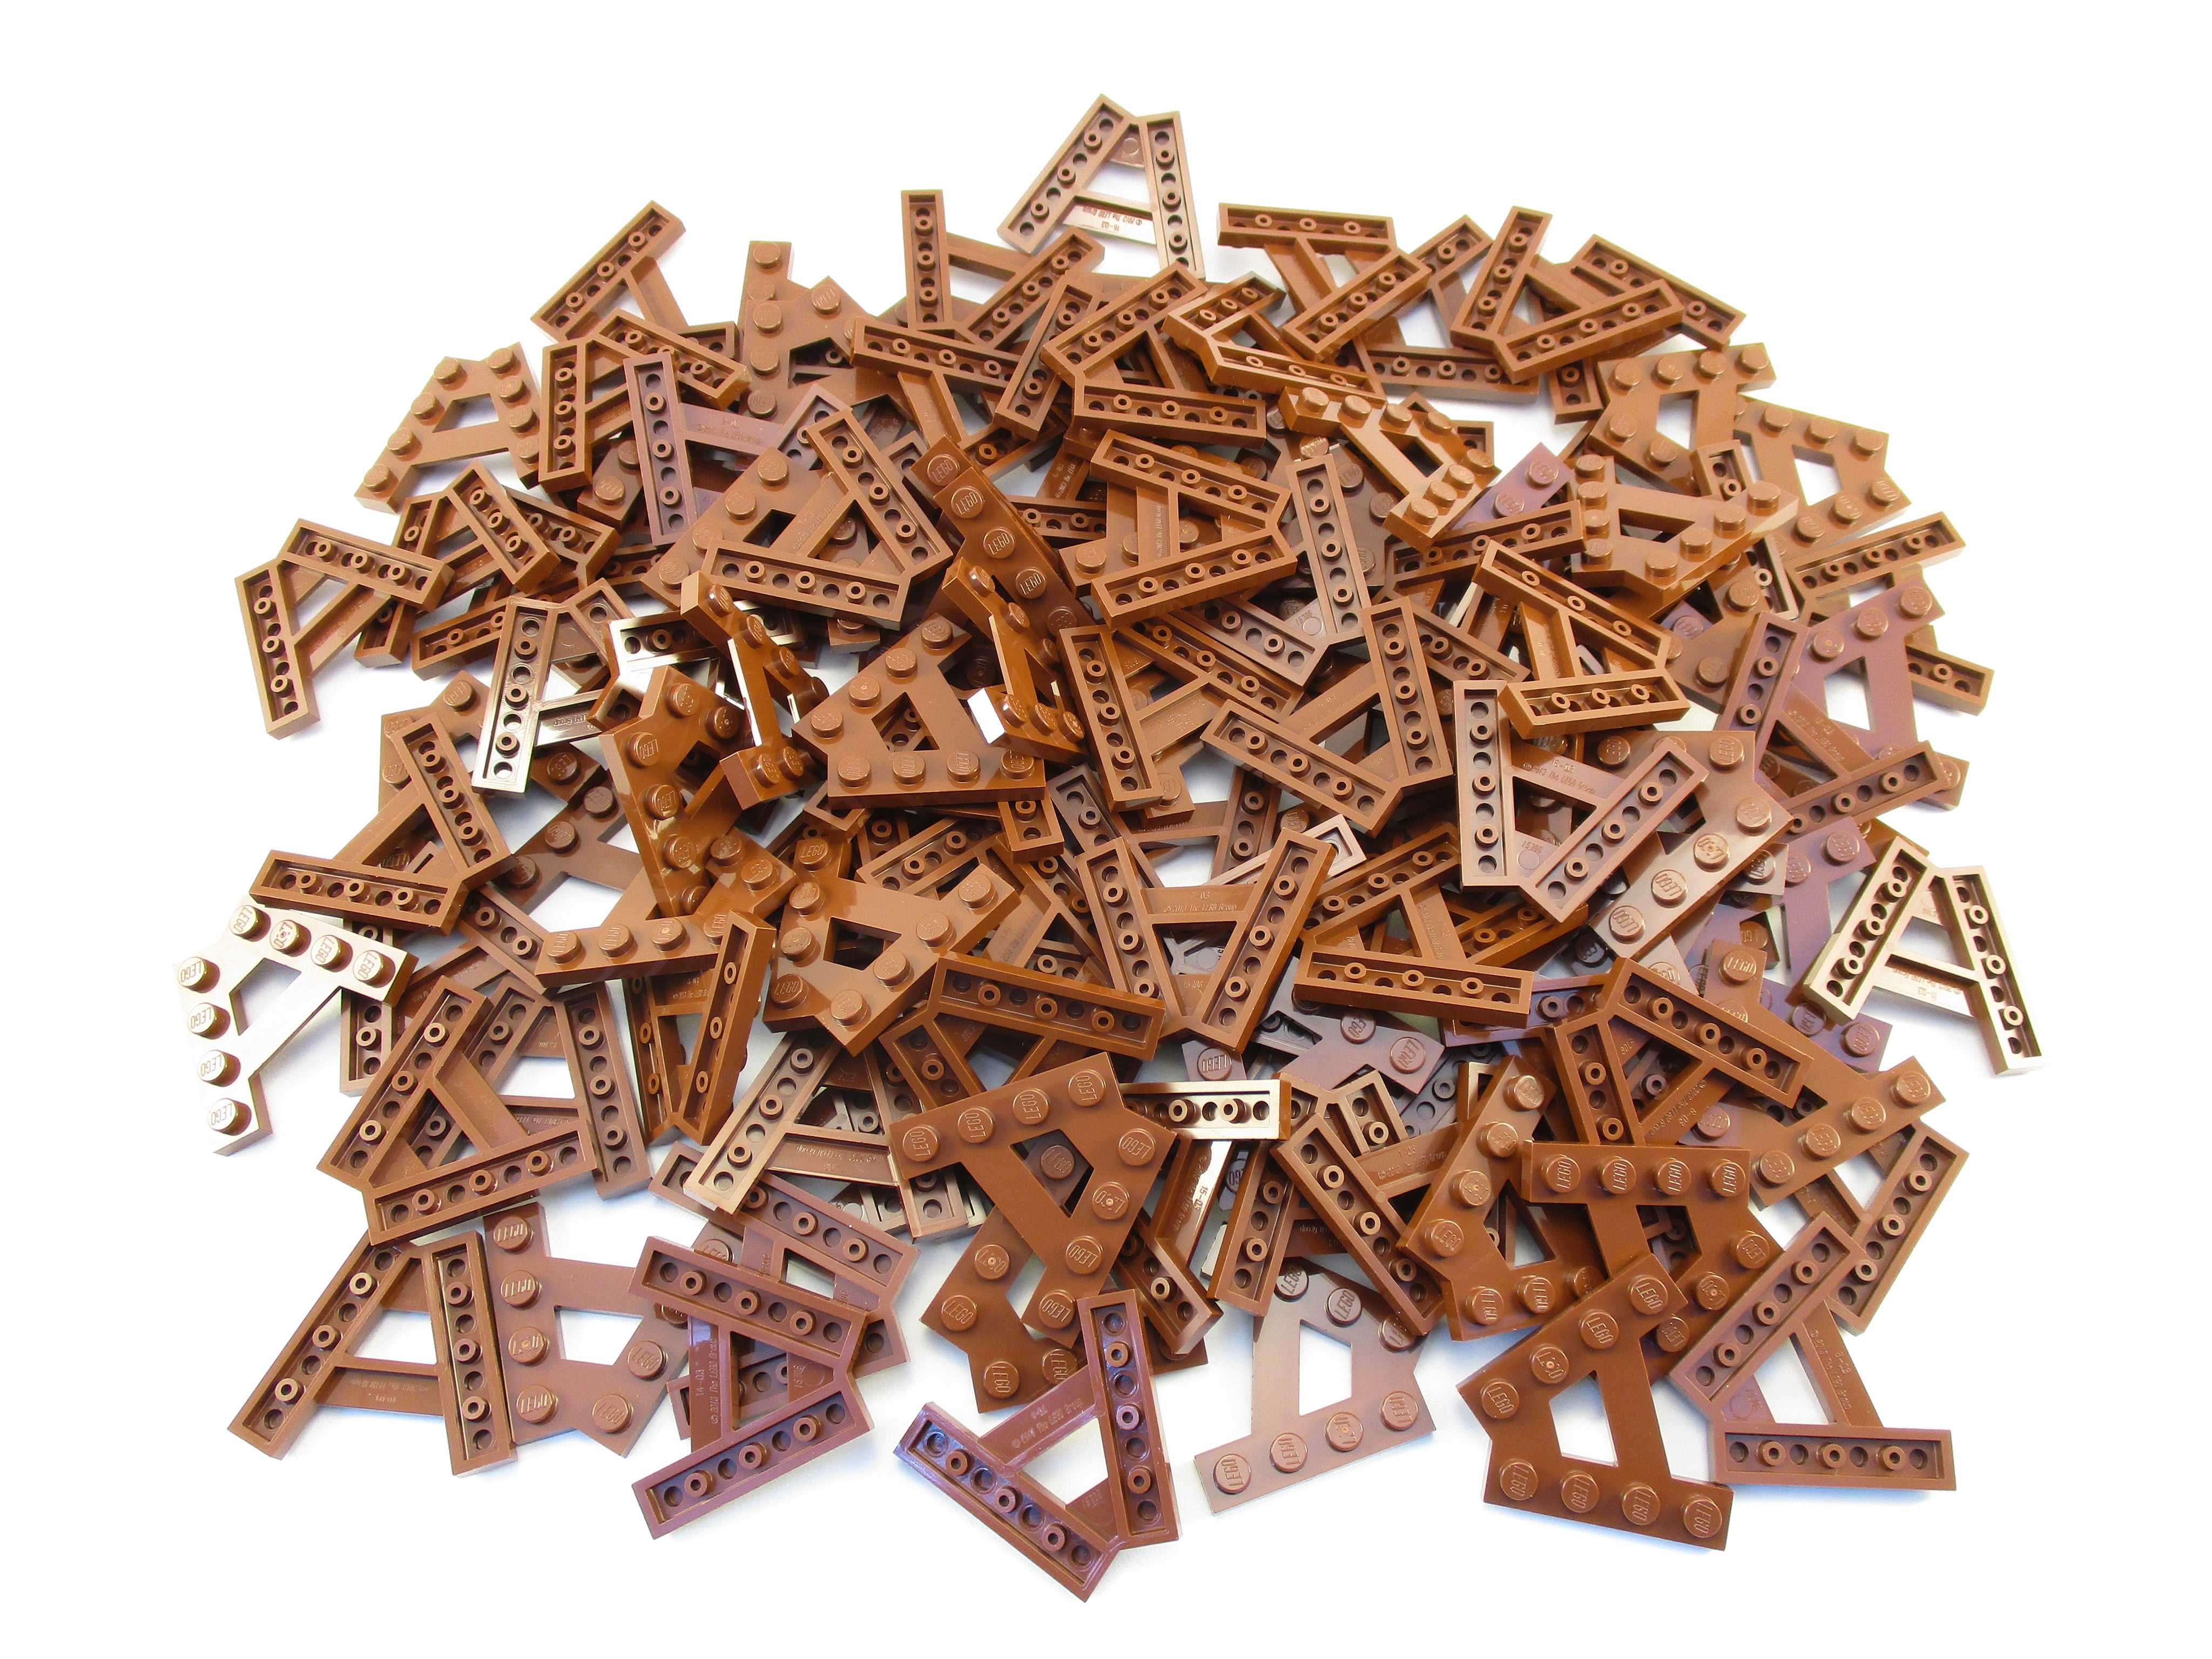 LEGO Reddish Brown Wedge Plate A-Shape Lot of 100 Parts Pieces 15706